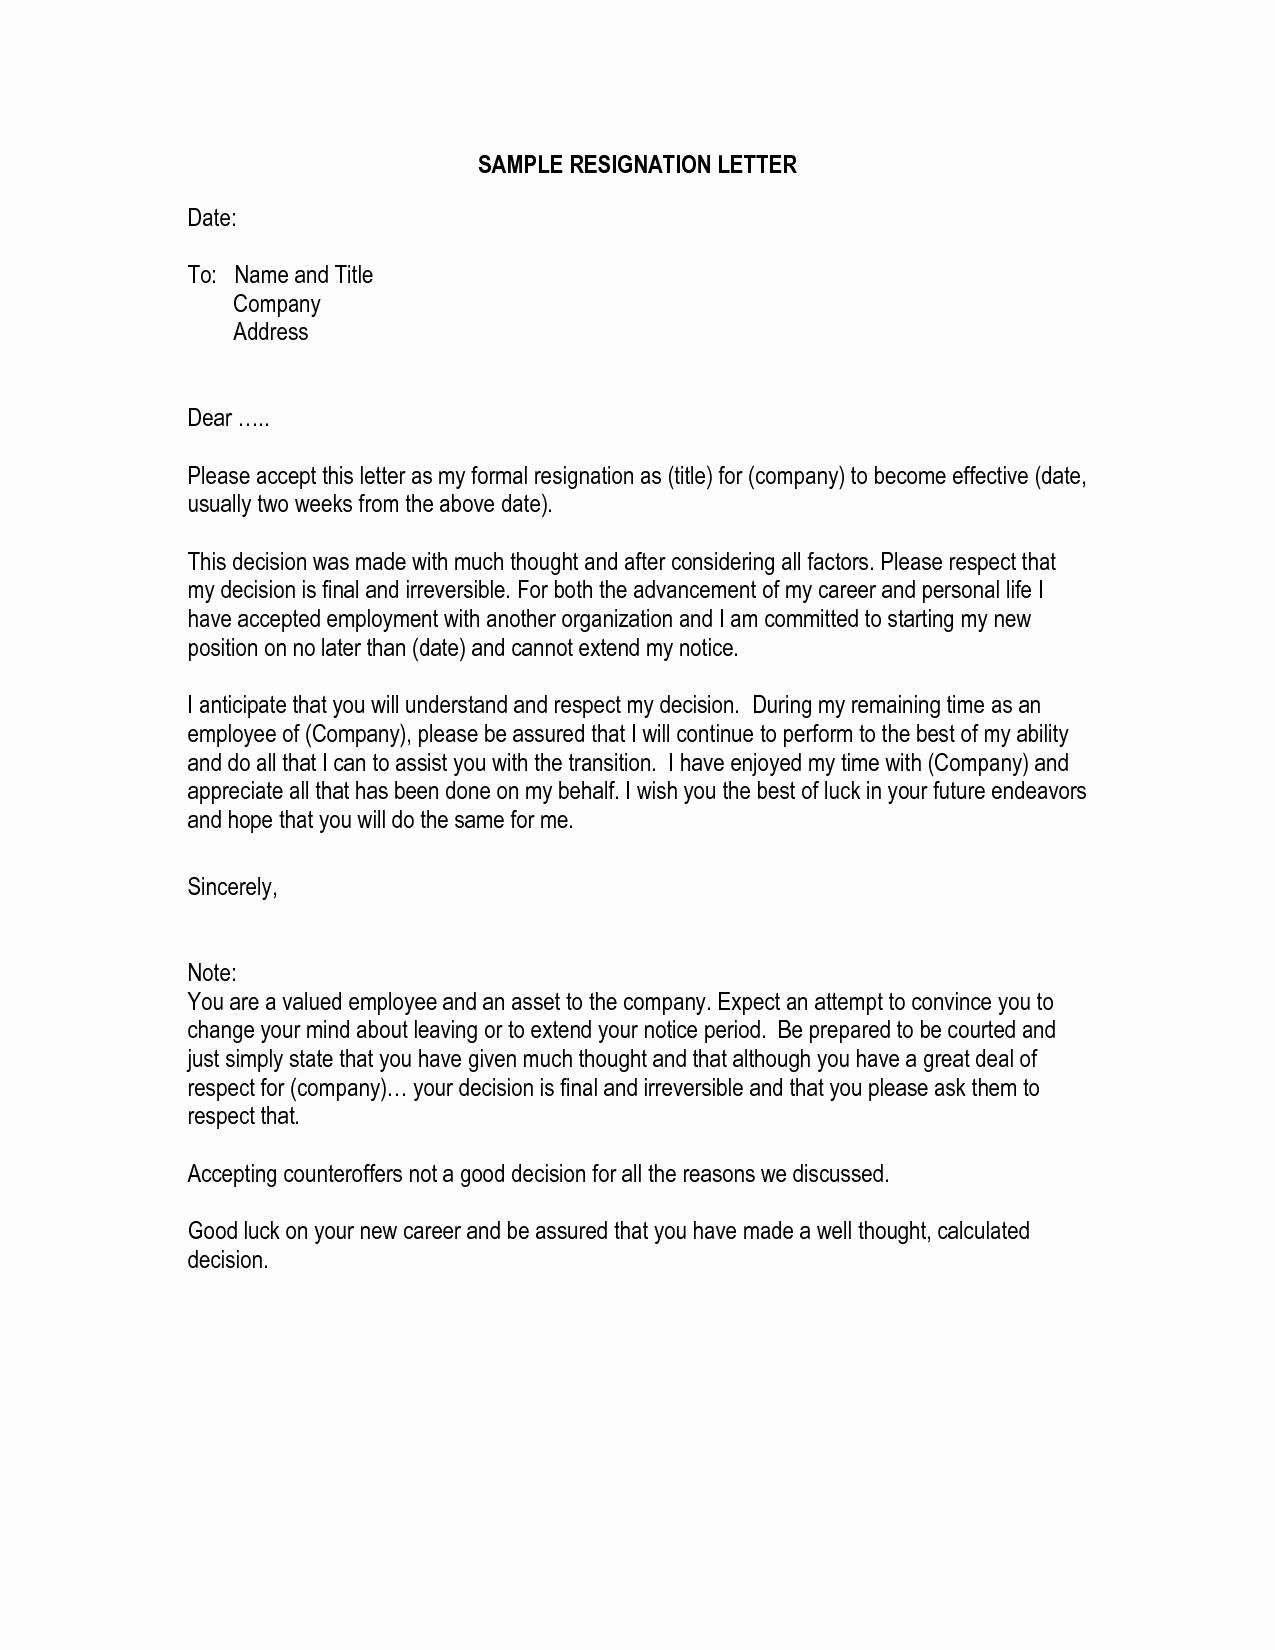 Letter Of Resignation Templates Word Beautiful Letter Of Resignation Template Word Letter Of Resignation